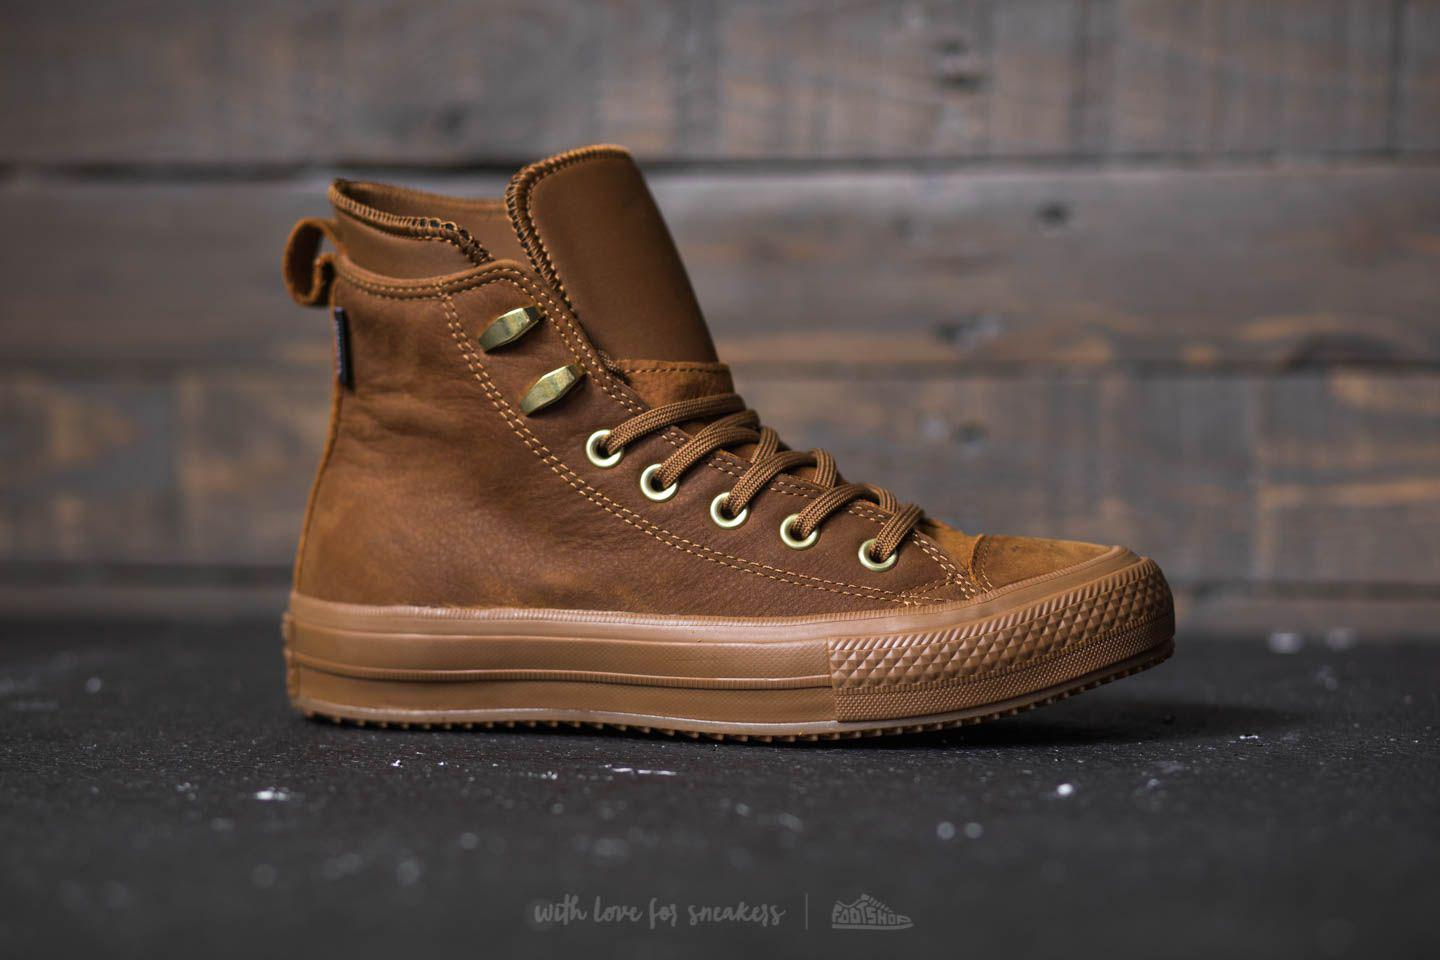 Lyst - Converse Chuck Taylor All Star Waterproof Boot Hi Brown ... 8d25b93ec4a